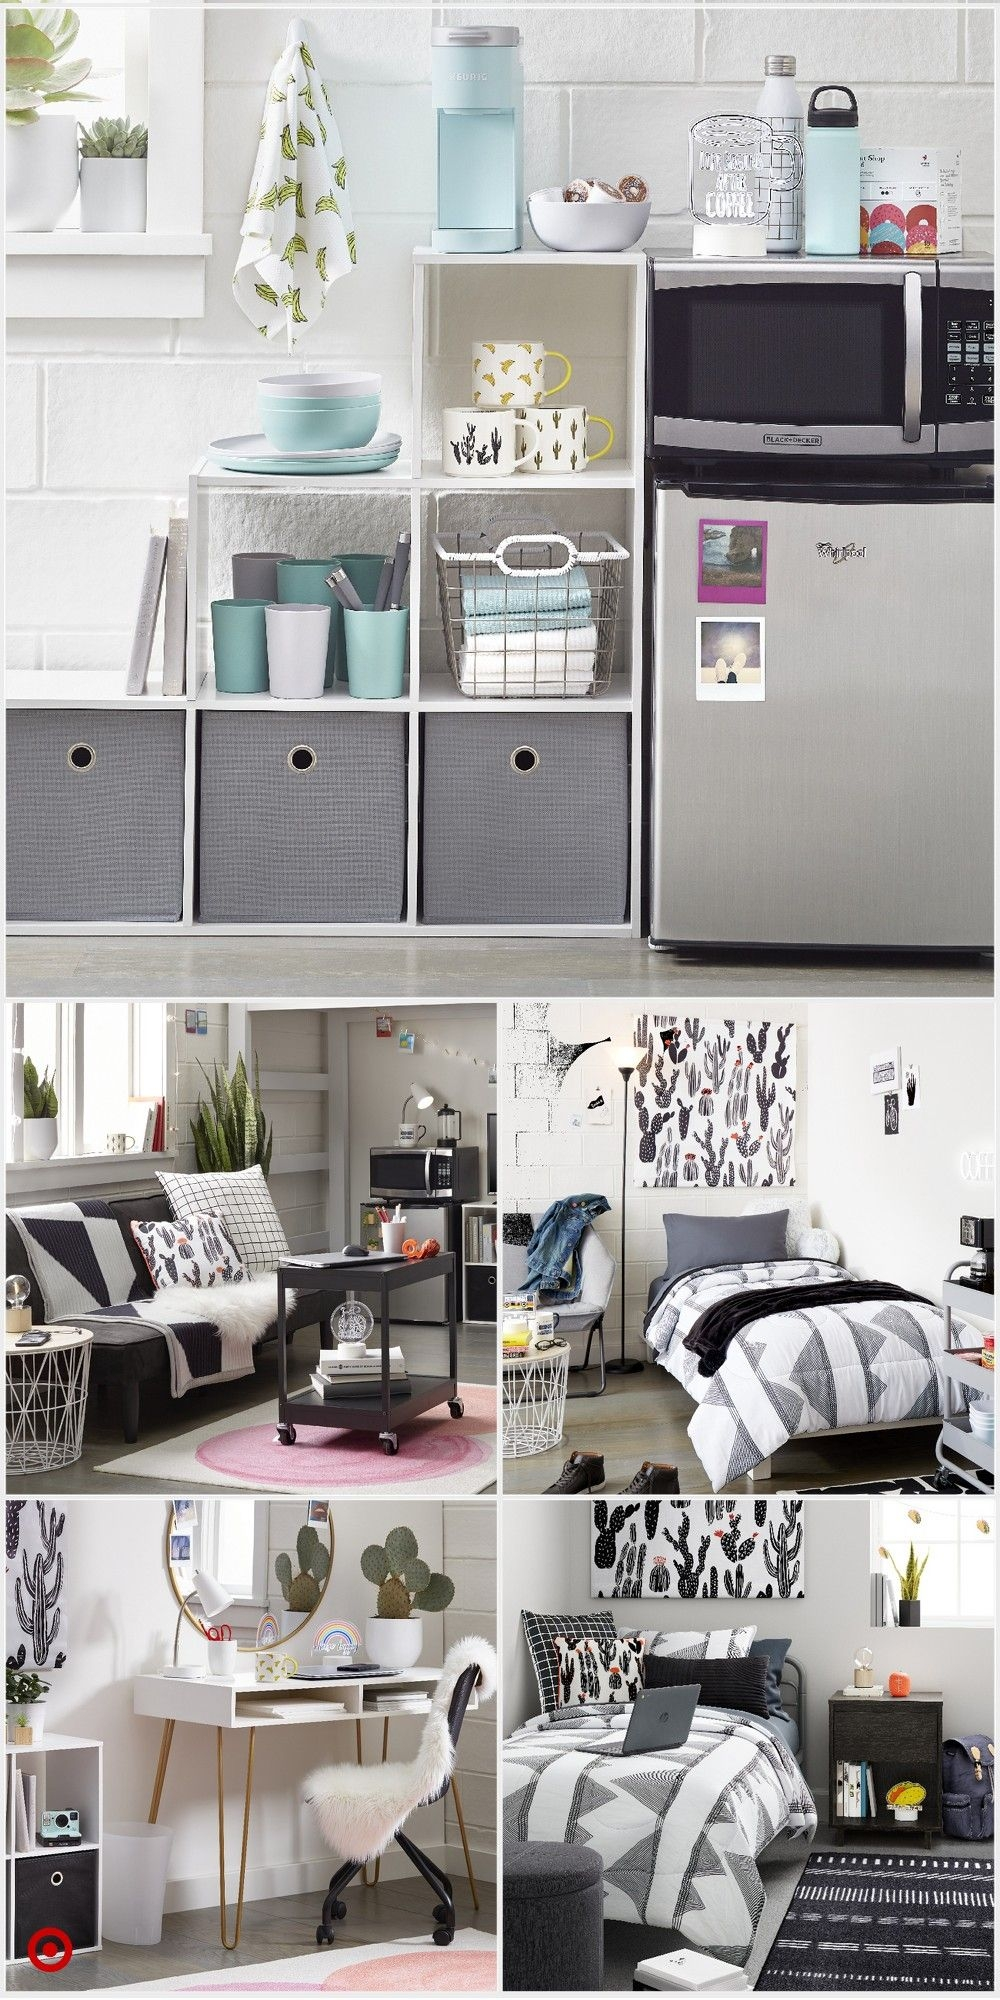 Artistic Dorm Room Stores On Decorative Shop Tar for Novelty & Sculpture & Lights You Will Love On Dorm Room Stores